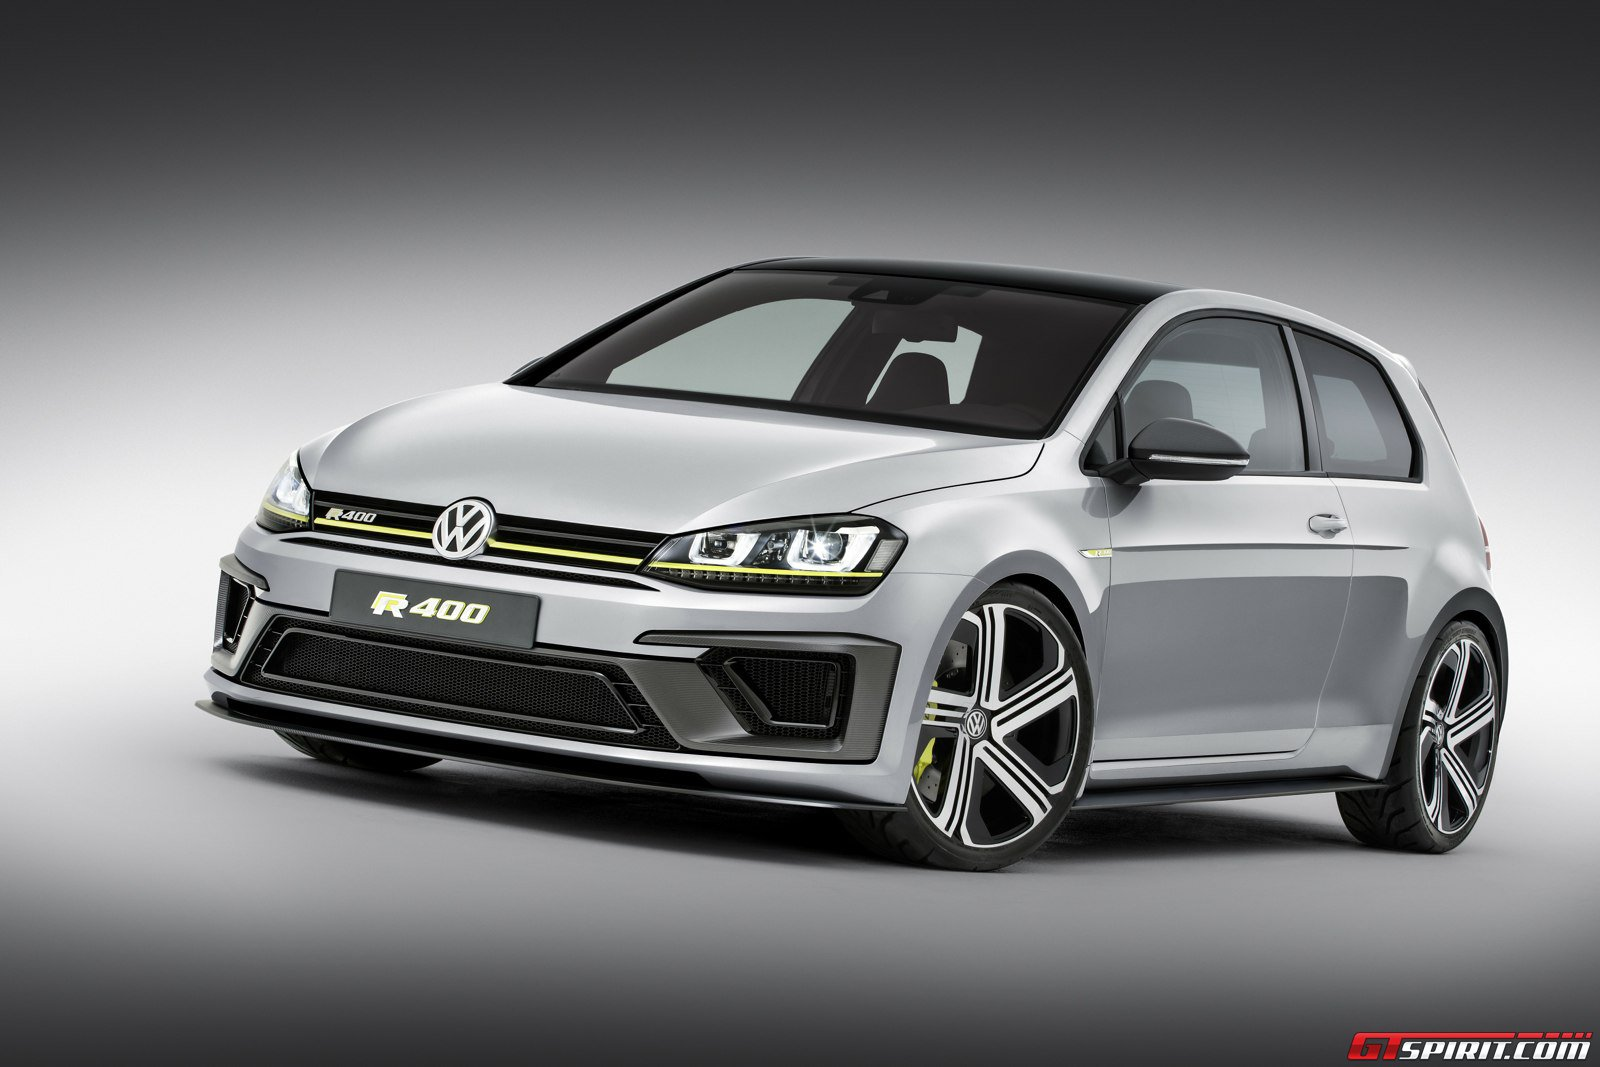 official 2015 volkswagen golf r 400 concept gtspirit. Black Bedroom Furniture Sets. Home Design Ideas